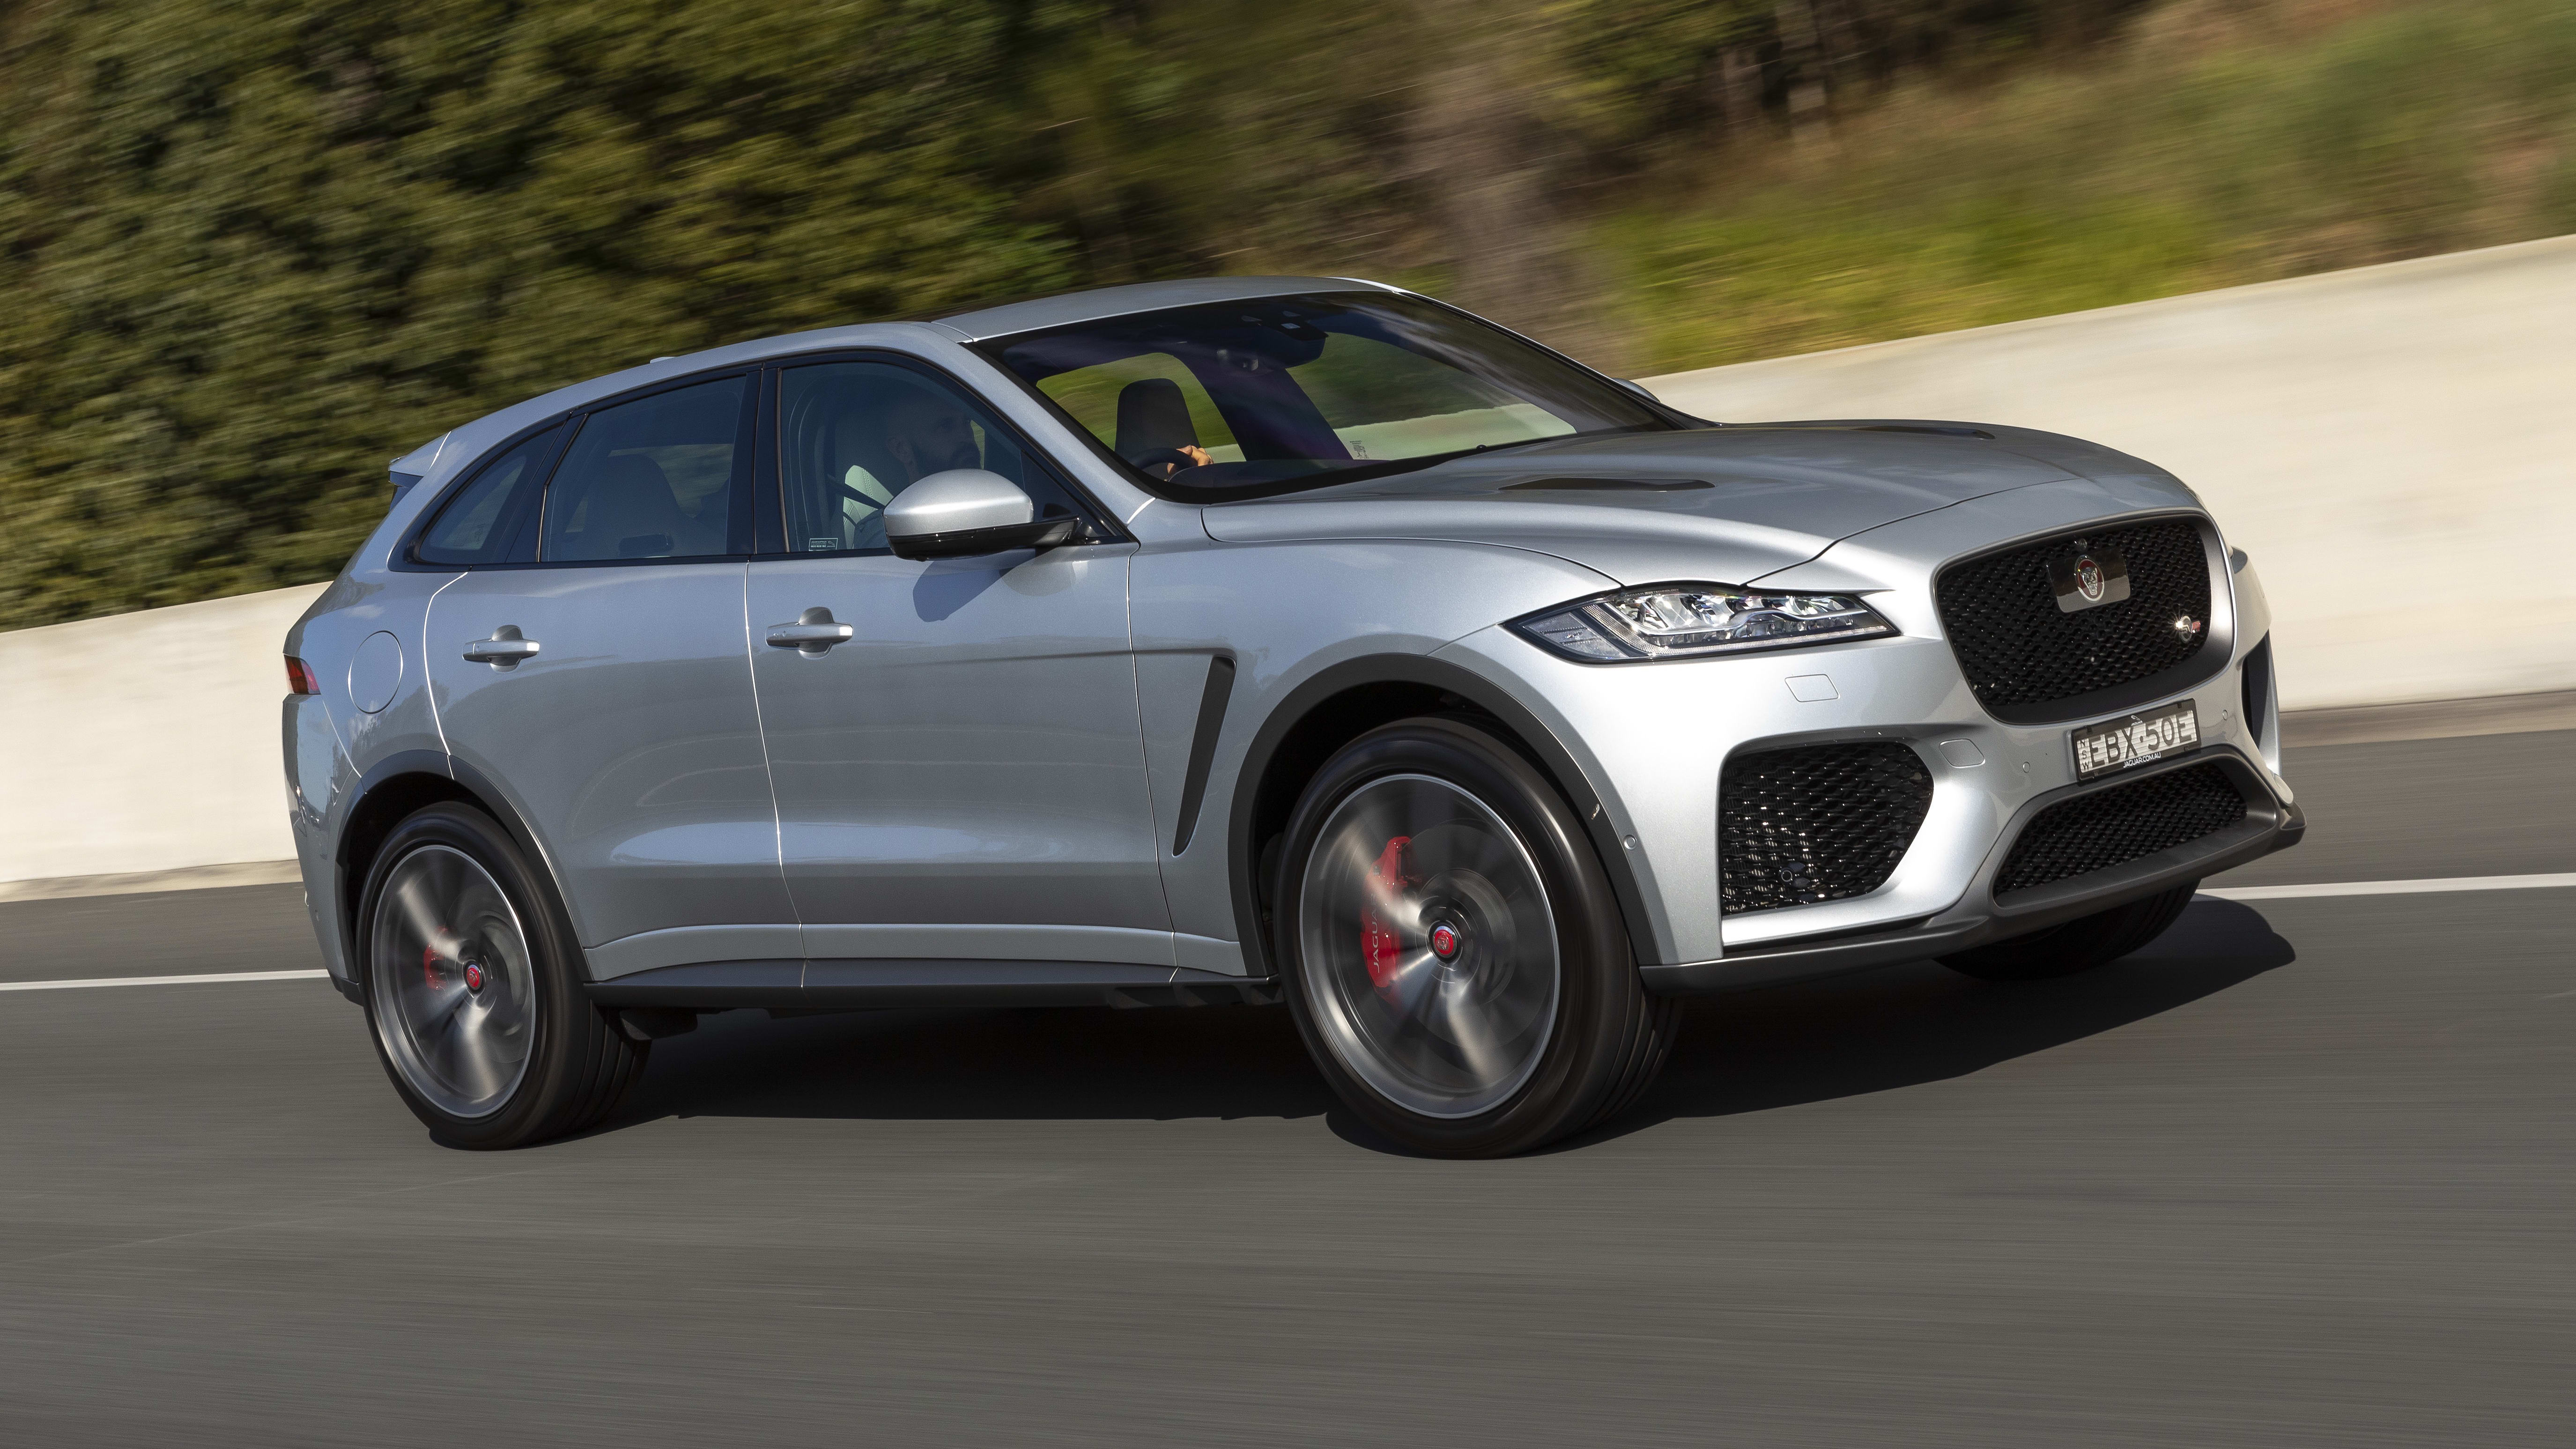 2020 Jaguar F Pace Svr Review Caradvice